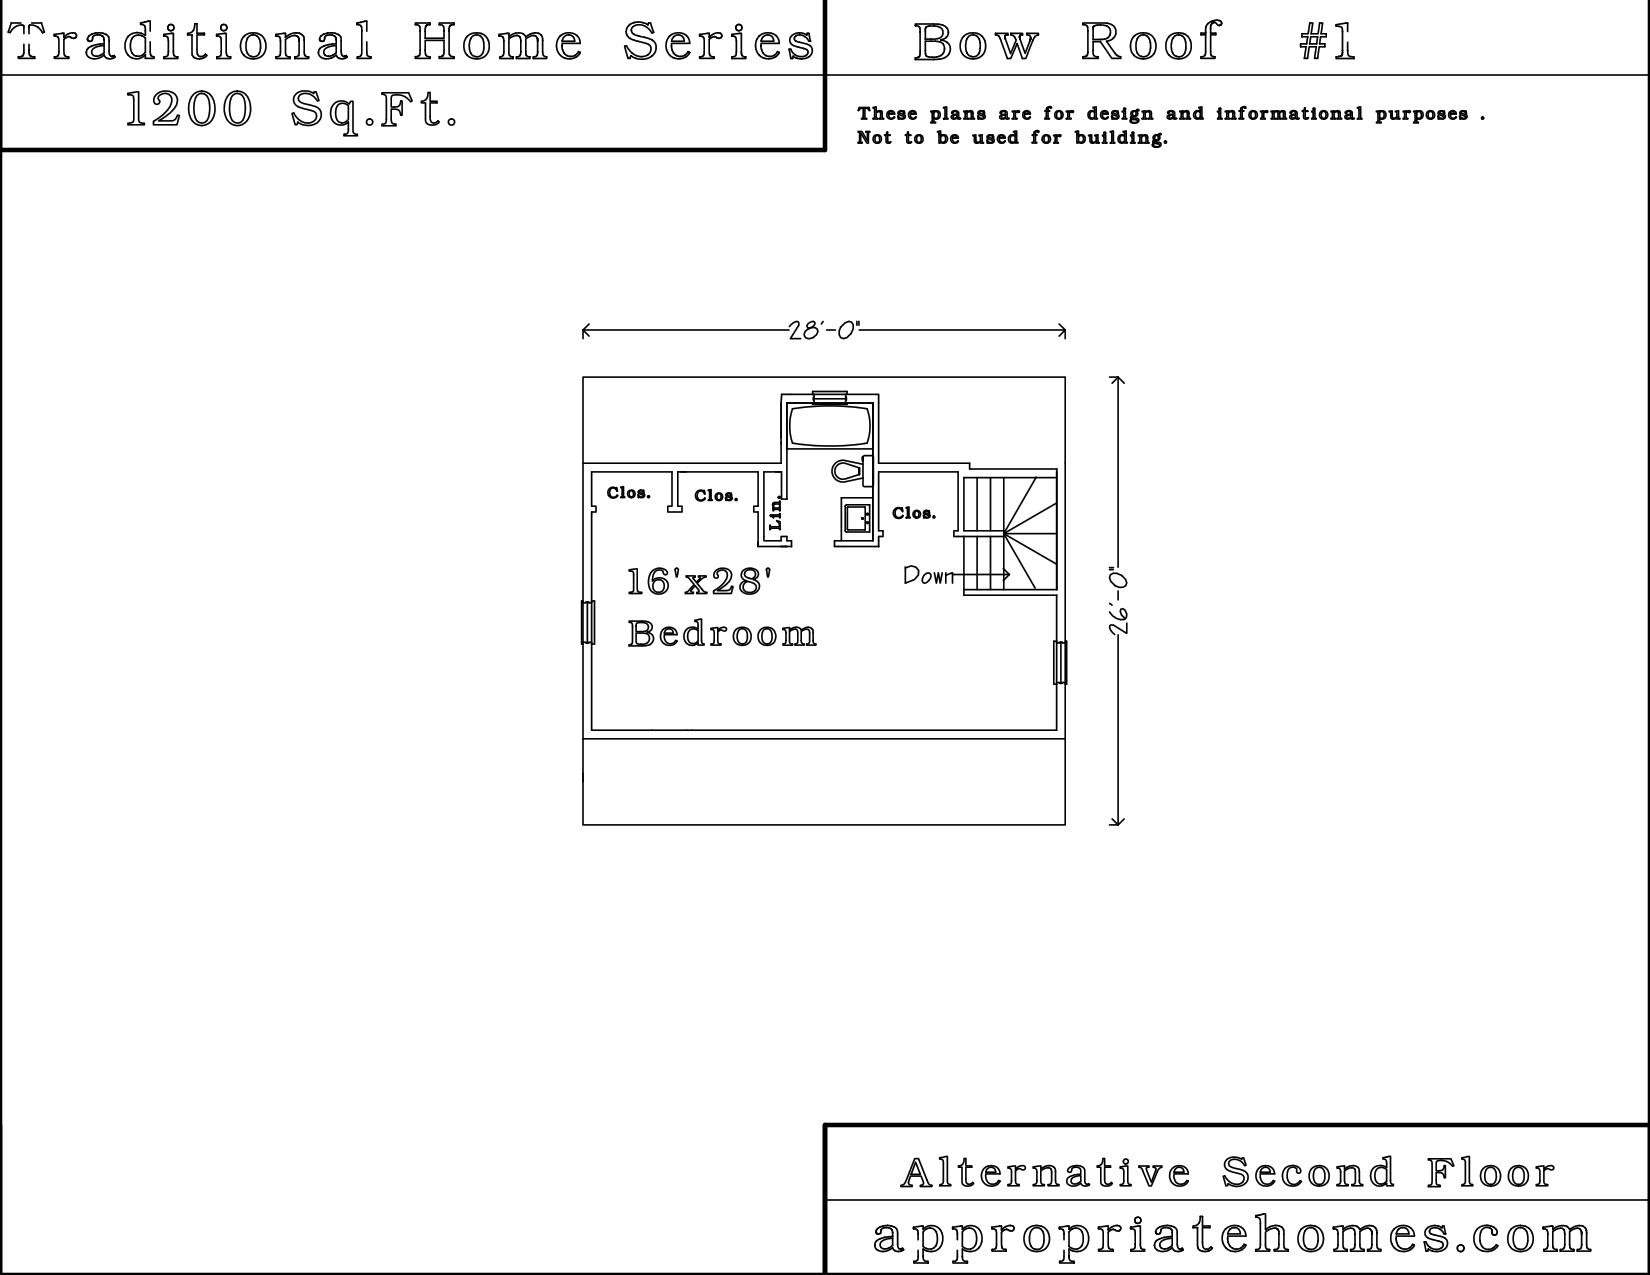 Cape cod home design bow roof style house plans builder for Bow house plans